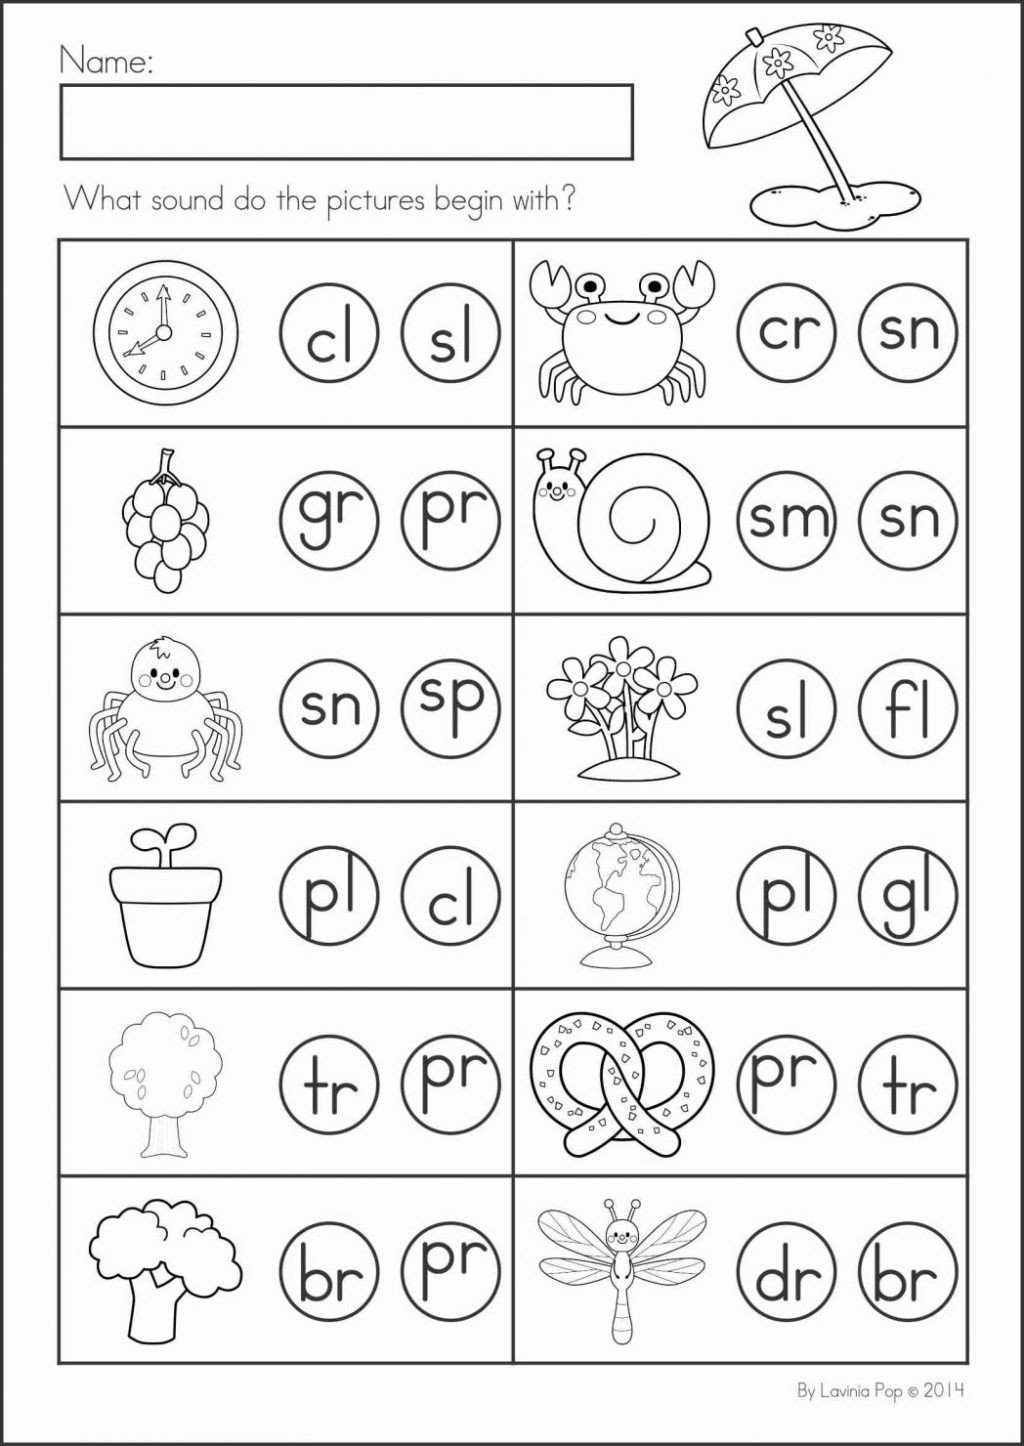 L Blends Worksheets for Kindergarten Consonant Clusters Worksheets for Kindergarten